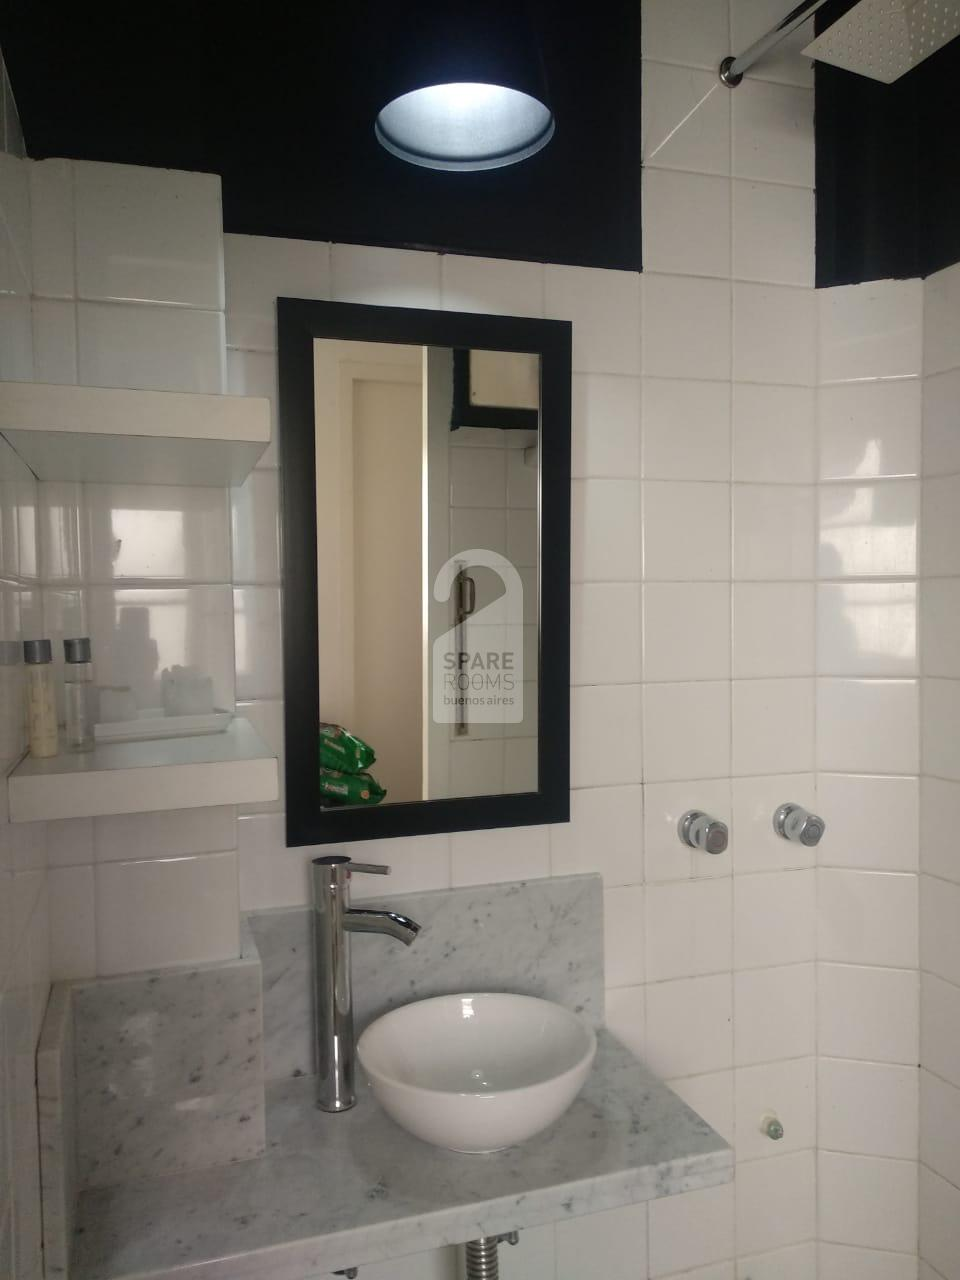 the recycled bathroom